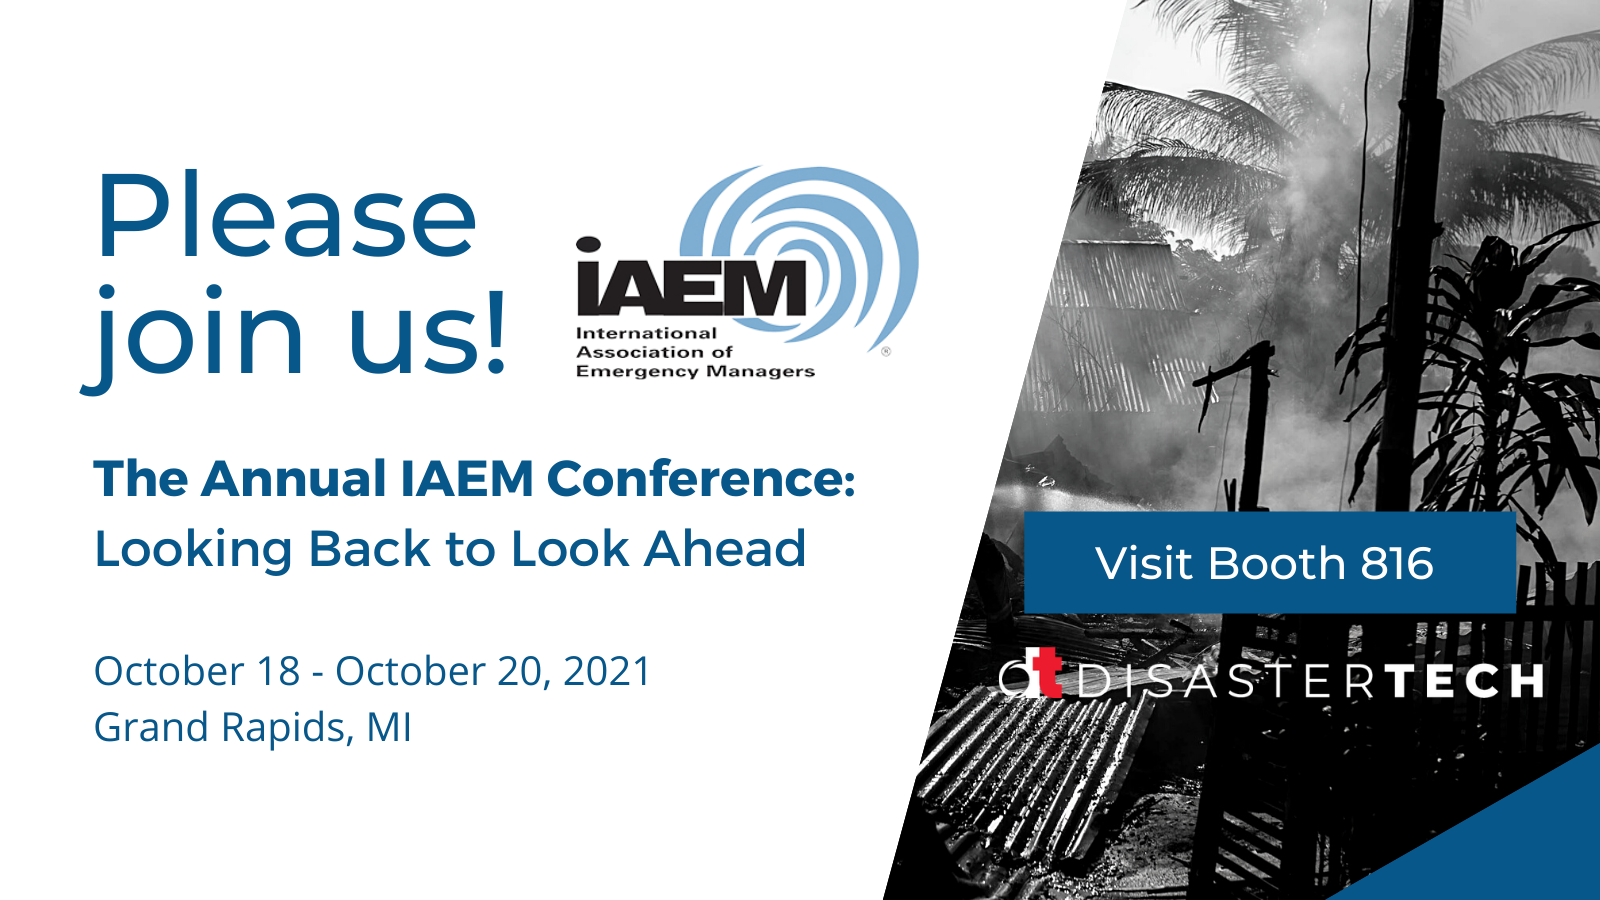 Join Us for the IAEM 2021 Conference in Grand Rapids, MI